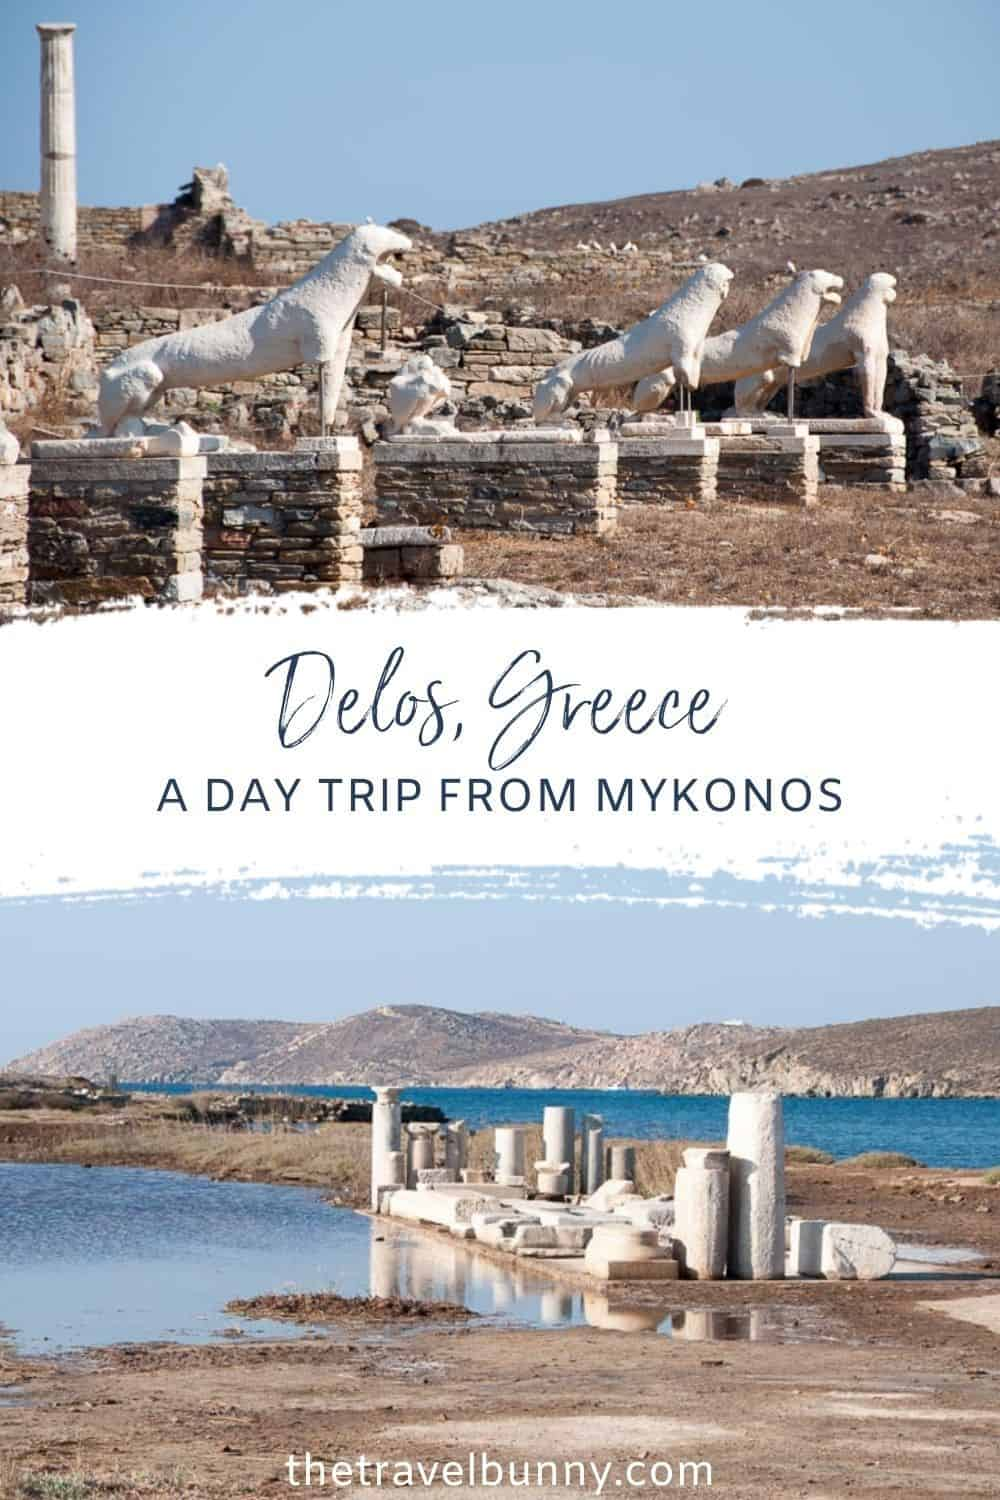 Visiting Delos on a day trip from Mykonos